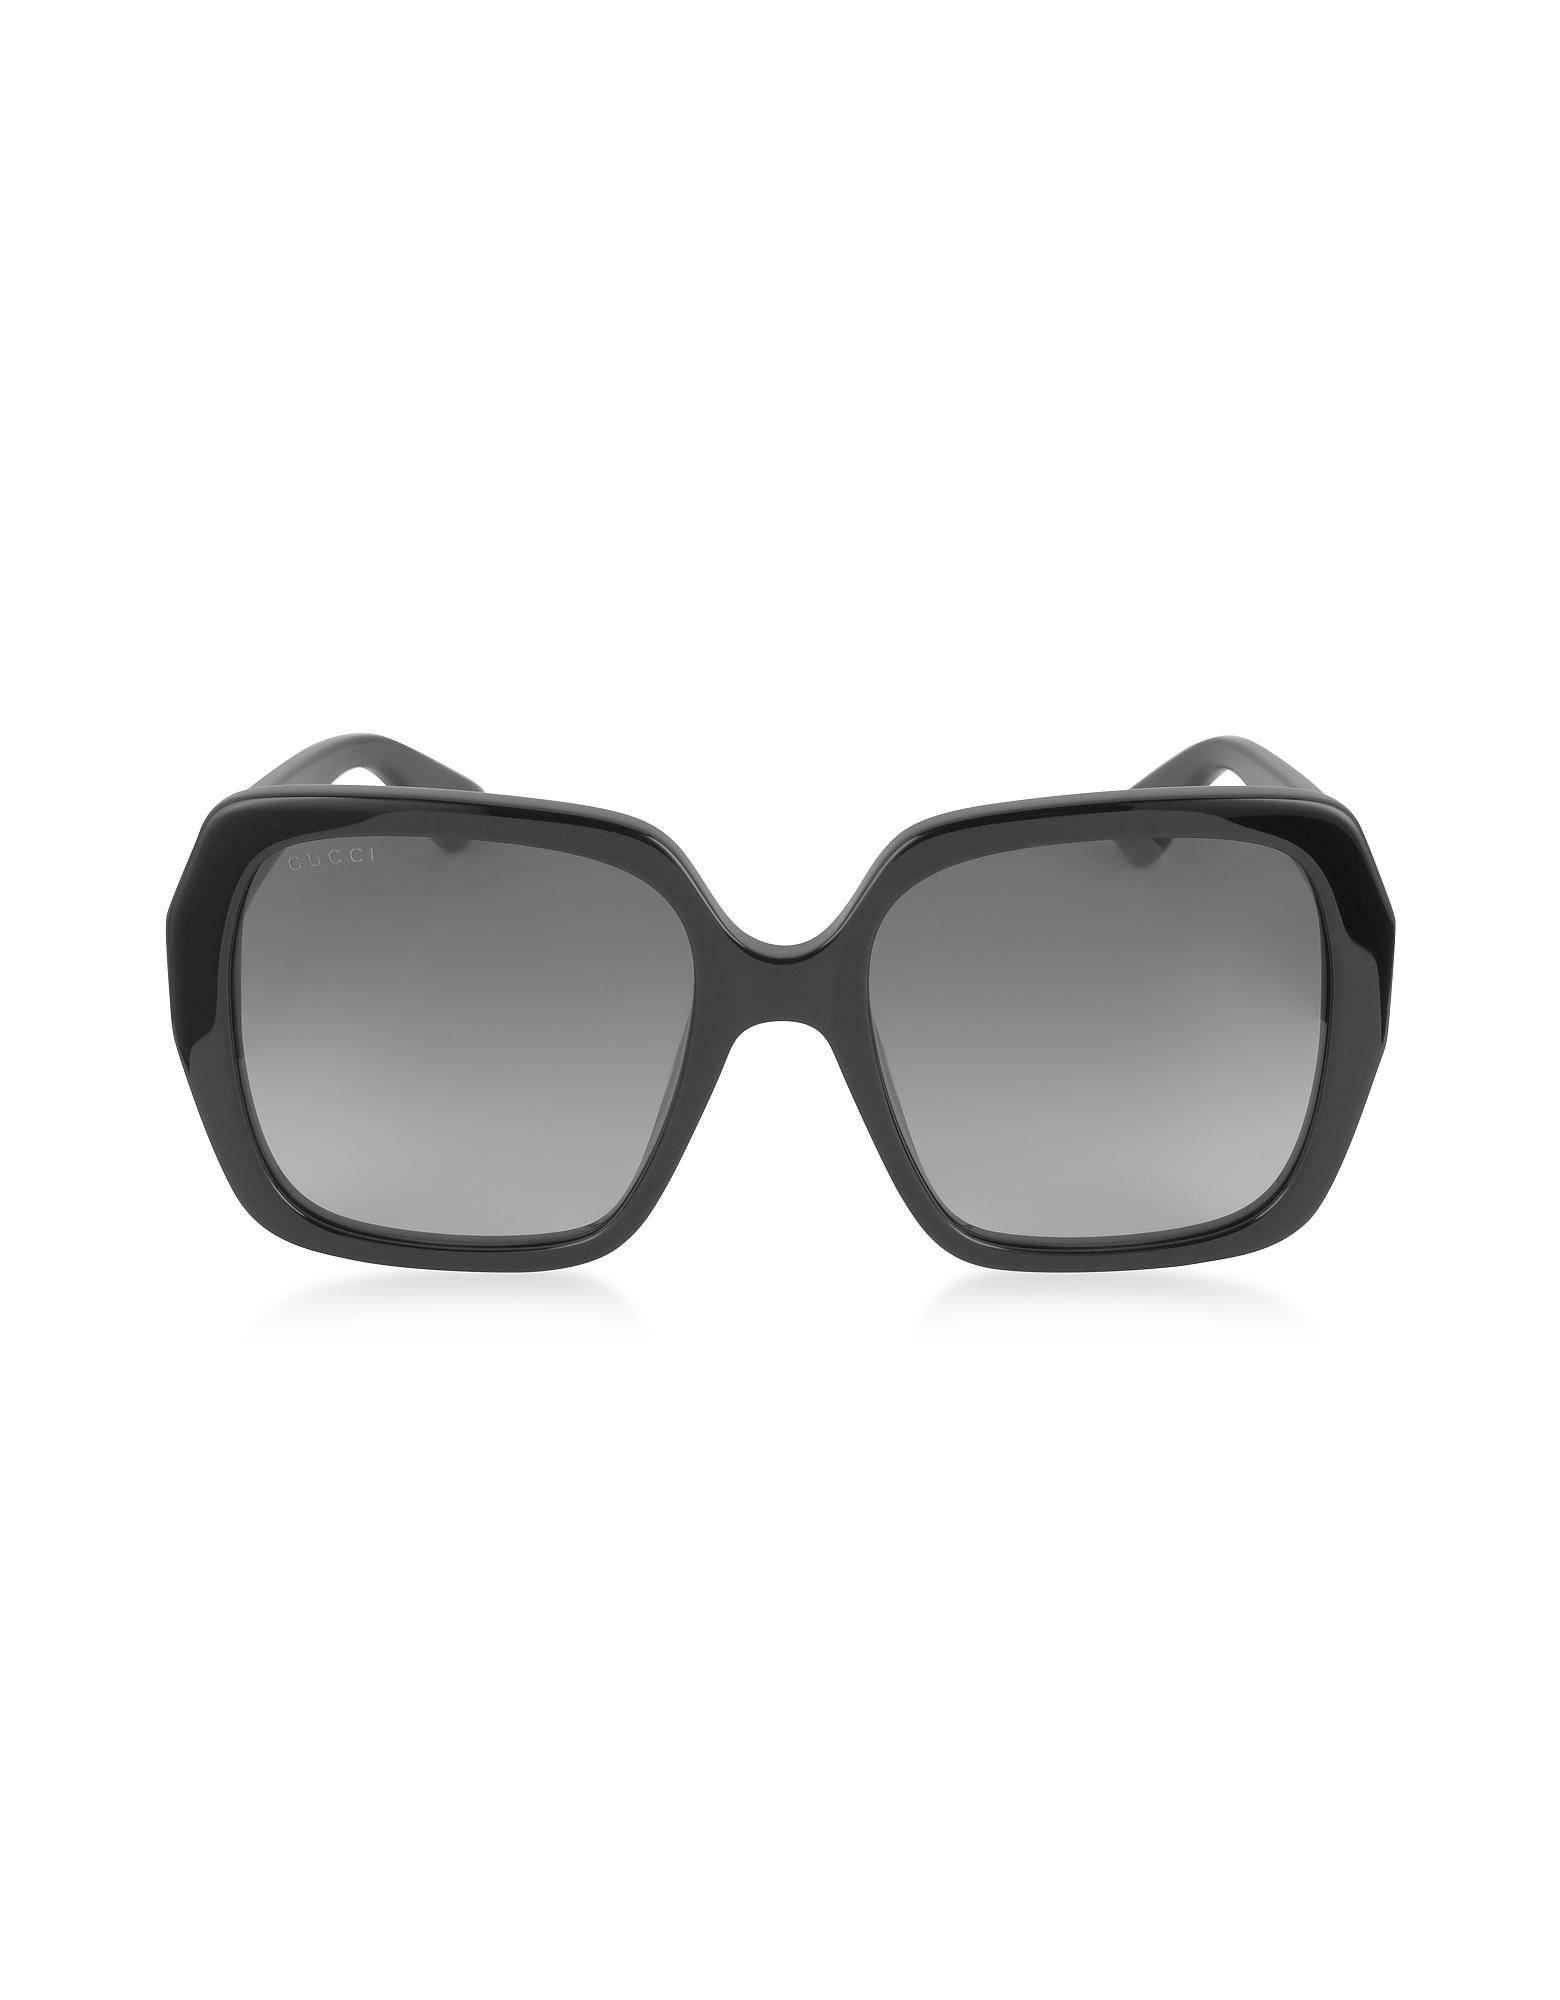 gucci 3806. gucci | gg0096s 001 black acetate square women\u0027s sunglasses lyst 3806